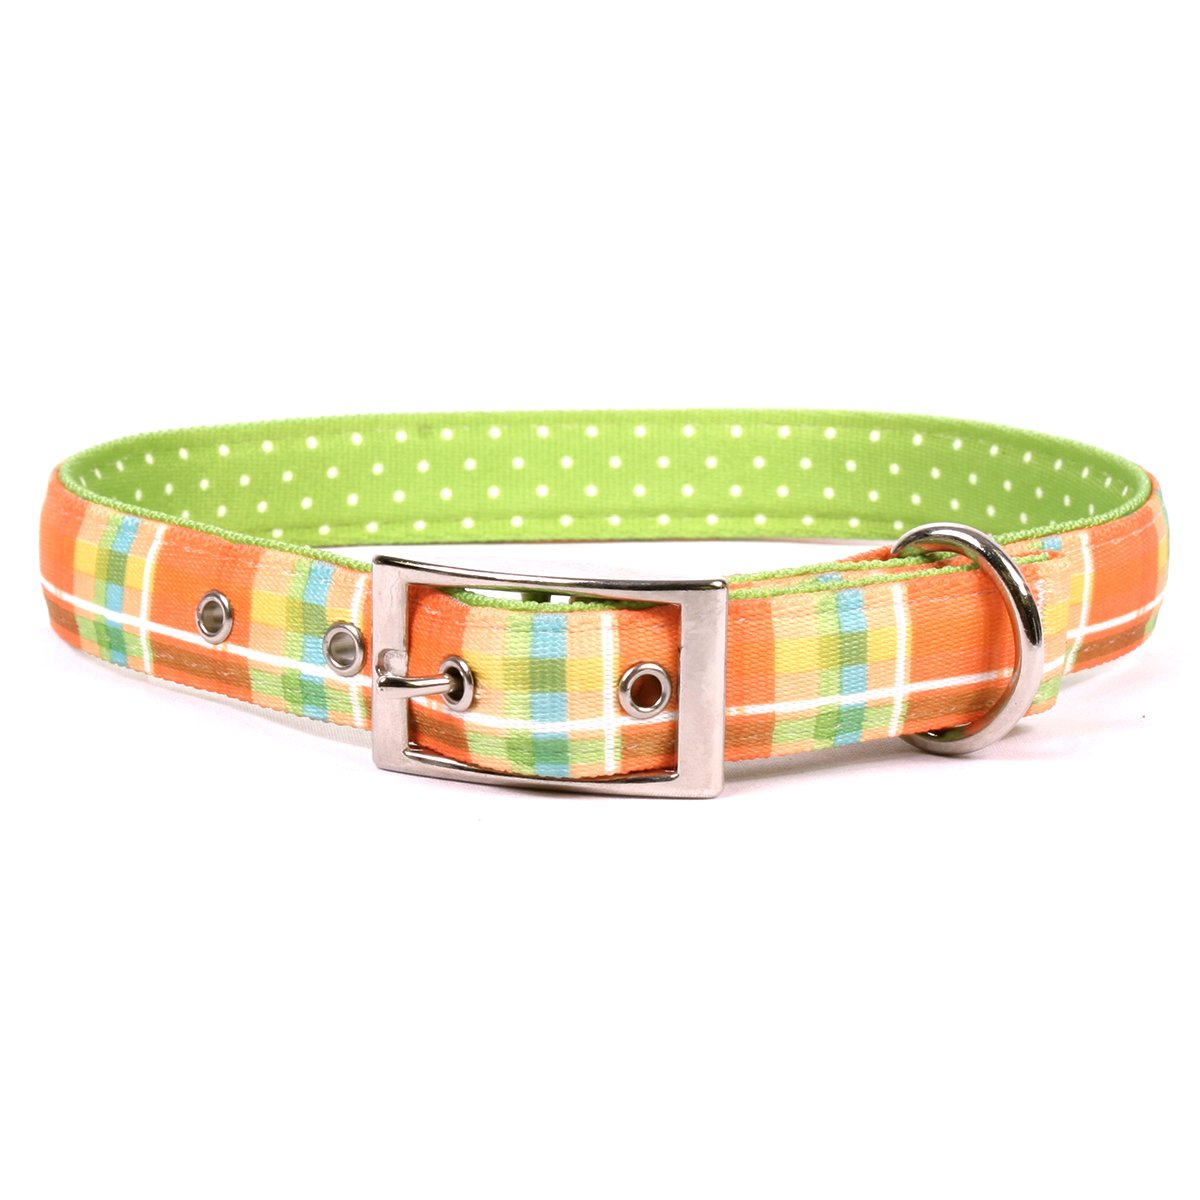 Medium 19\ Yellow Dog Design Madras orange Uptown Dog Collar, Medium-1  wide and fits neck sizes 15 to 18.5